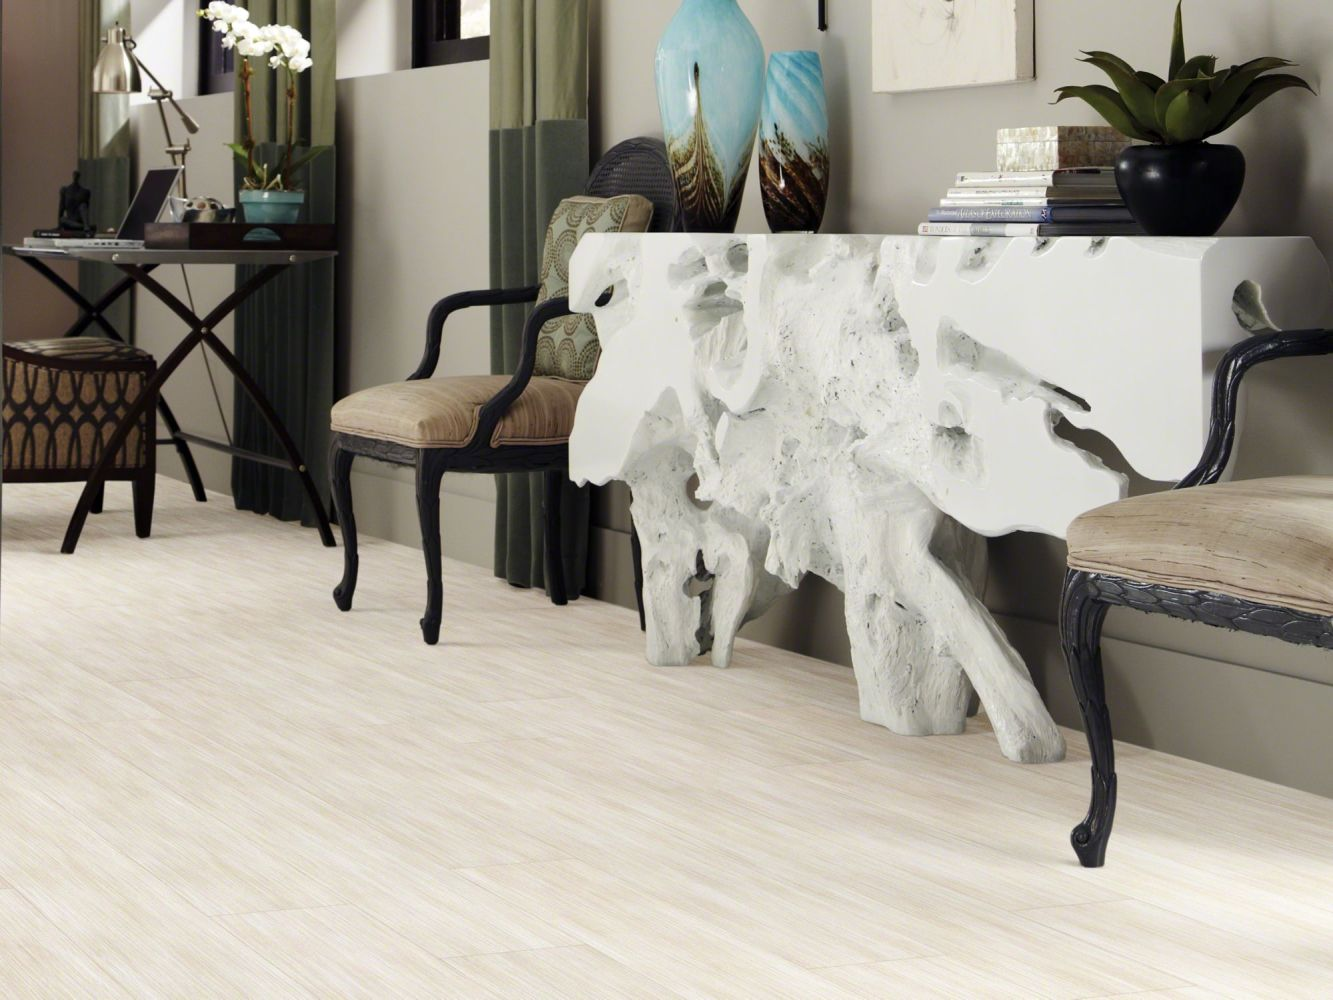 Shaw Floors Resilient Property Solutions Modernality 20 Bistro 00271_VE109